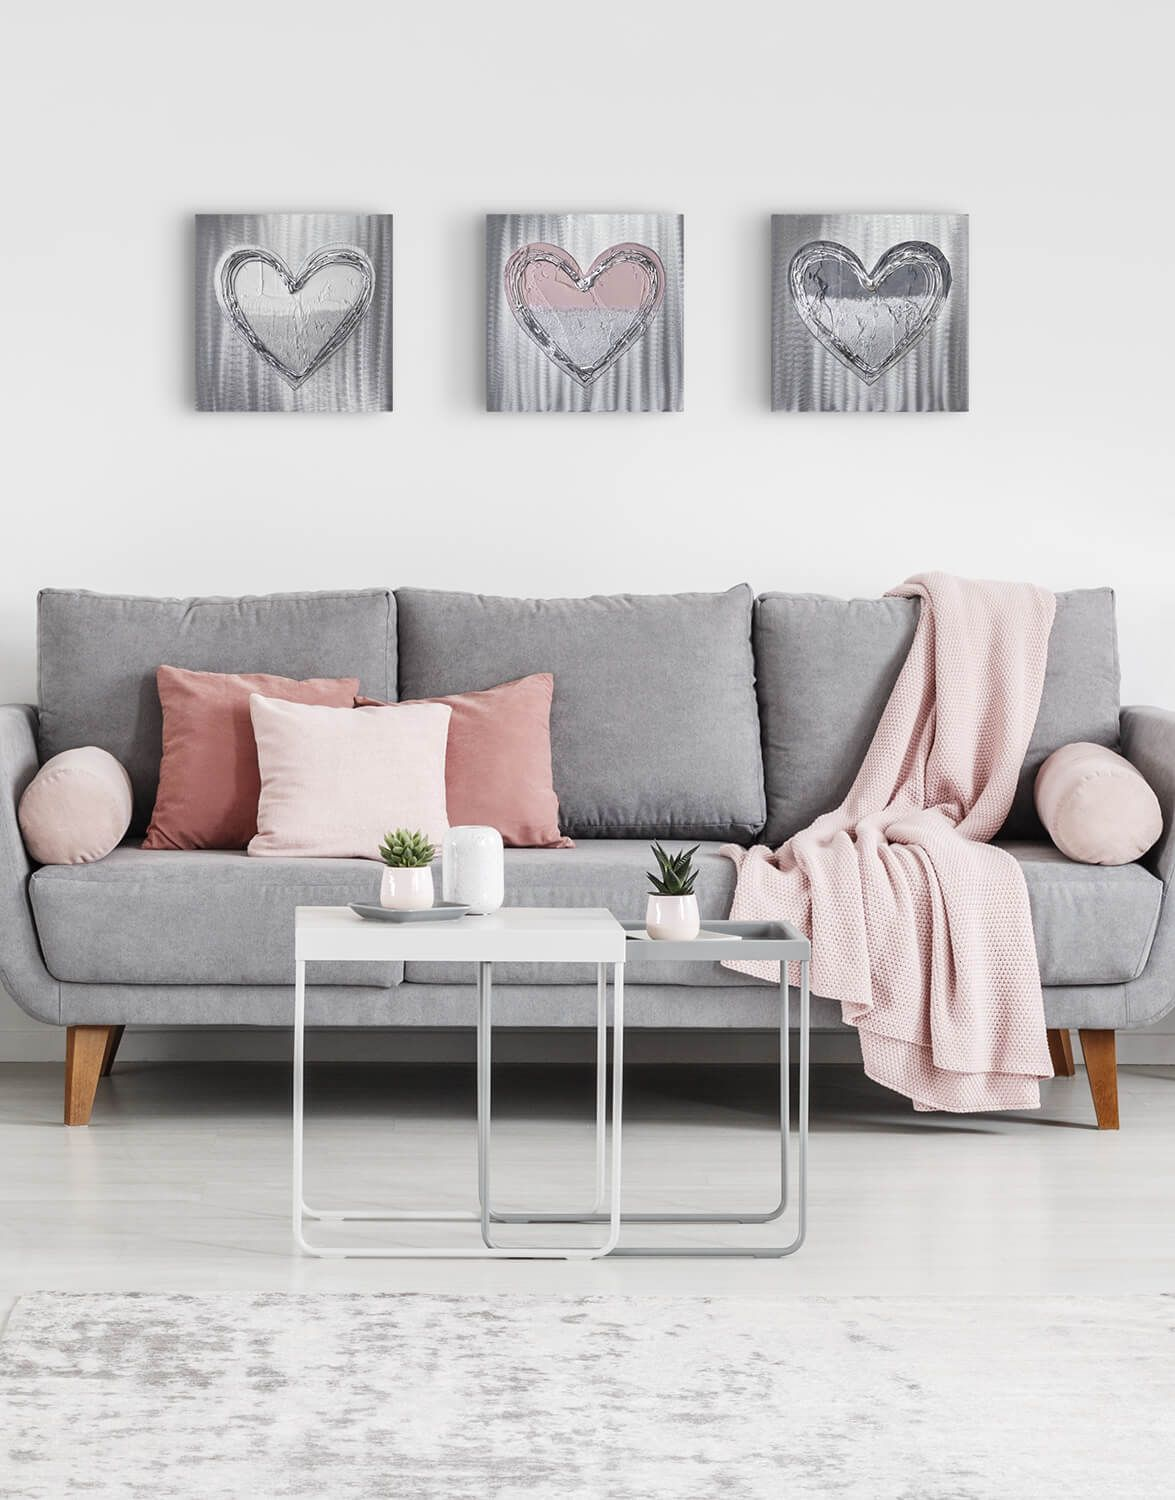 Dusky Pink Love Heart Set Silver Wall Art Contemporary Art Uk In 2020 Pink Living Room Decor Living Room Decor Gray Gray Living Room Design